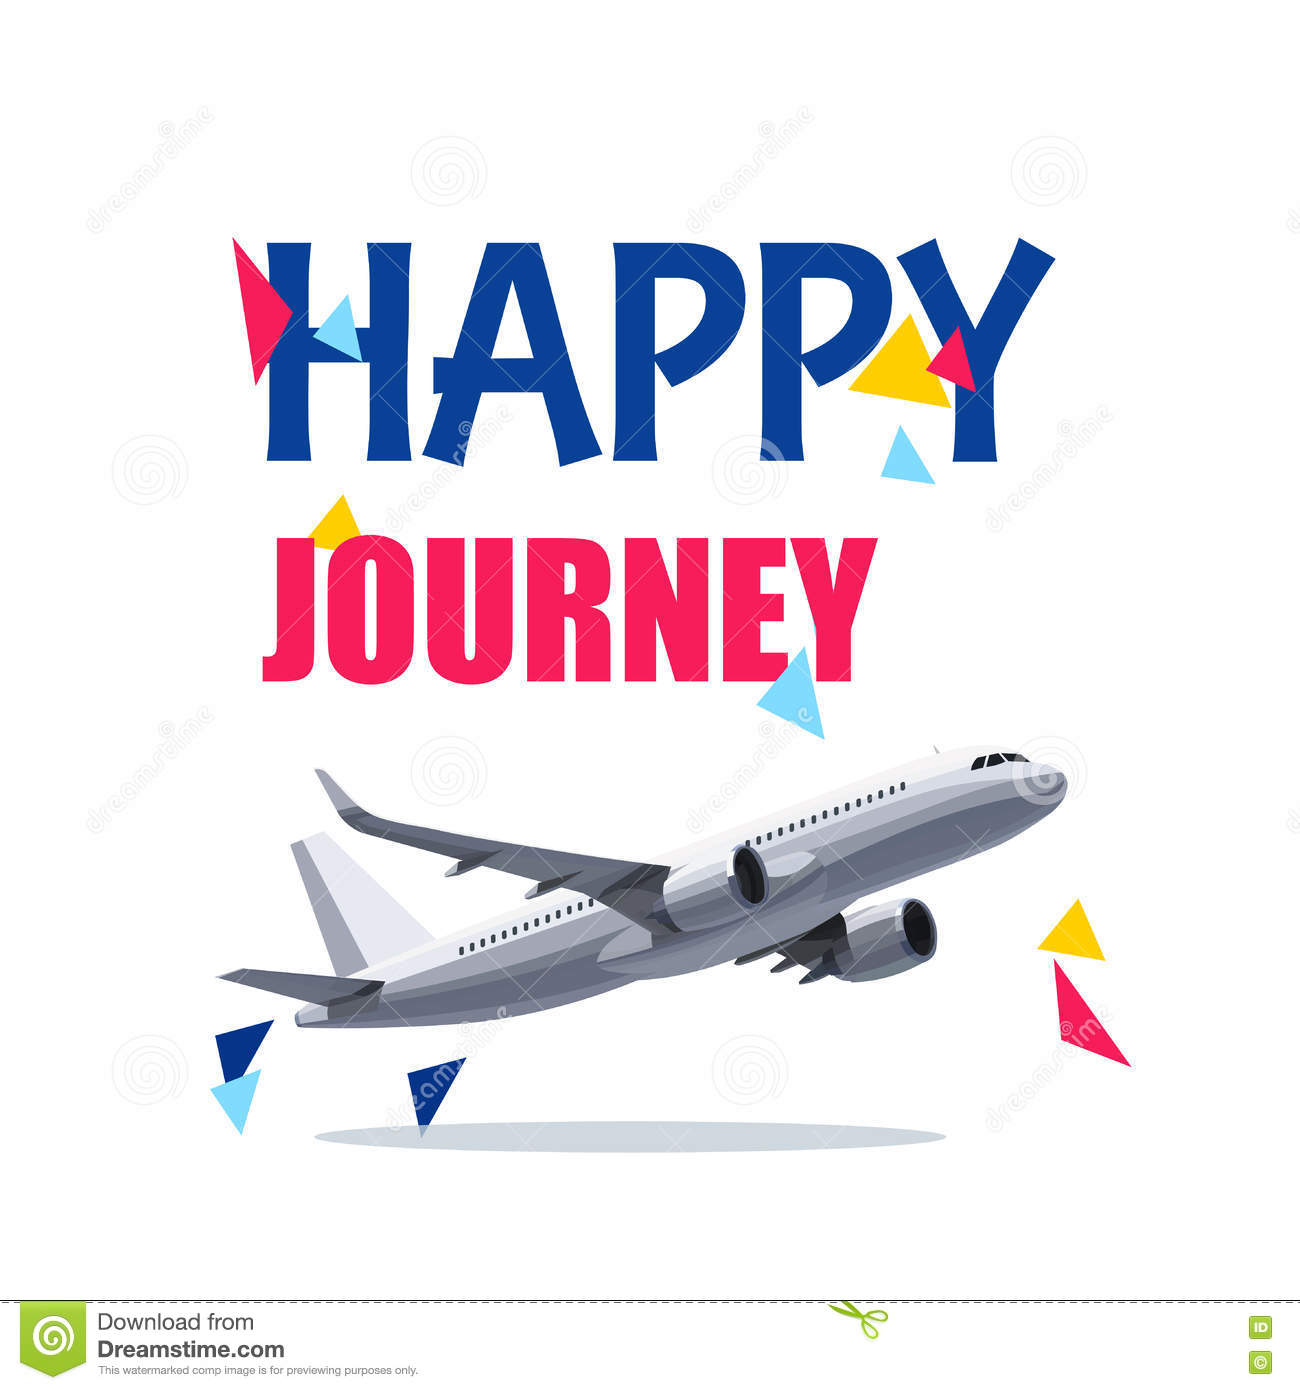 Flying Air Plane With Happy Journey Header Wishes For A